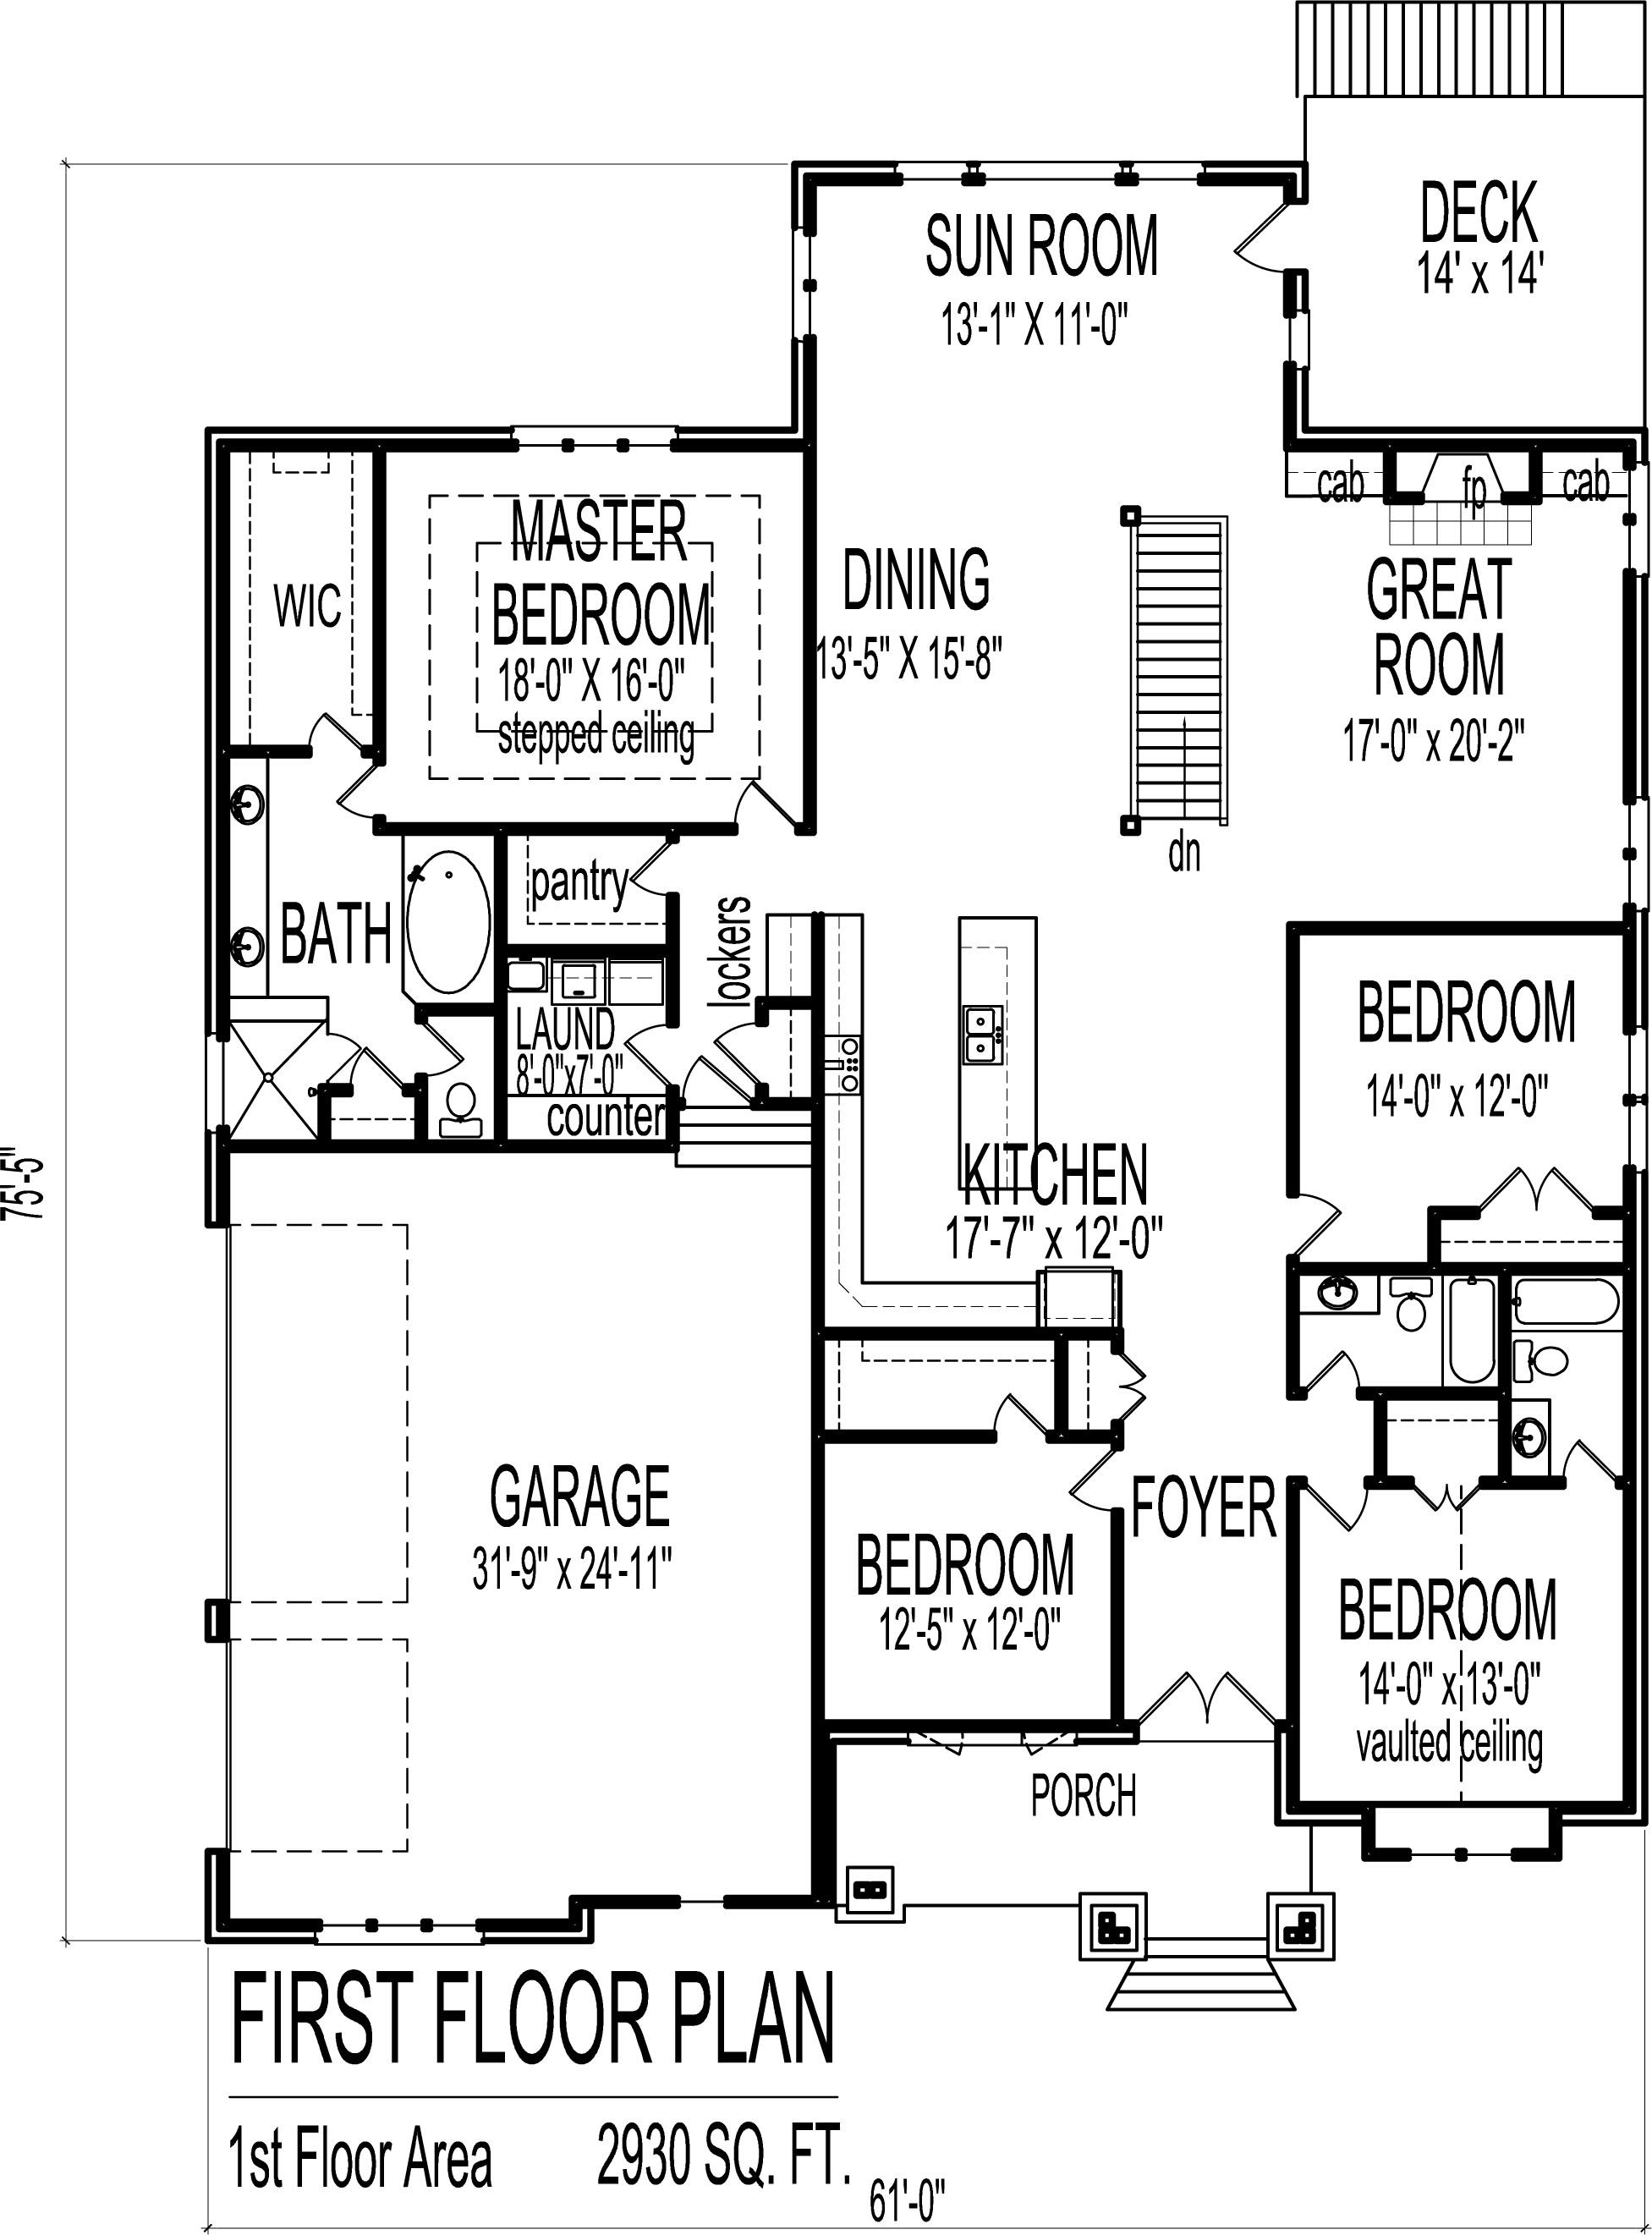 2 Storey Apartment Floor Plans Philippines 1 story 2 bedroom house plans | house & garden: floor plans